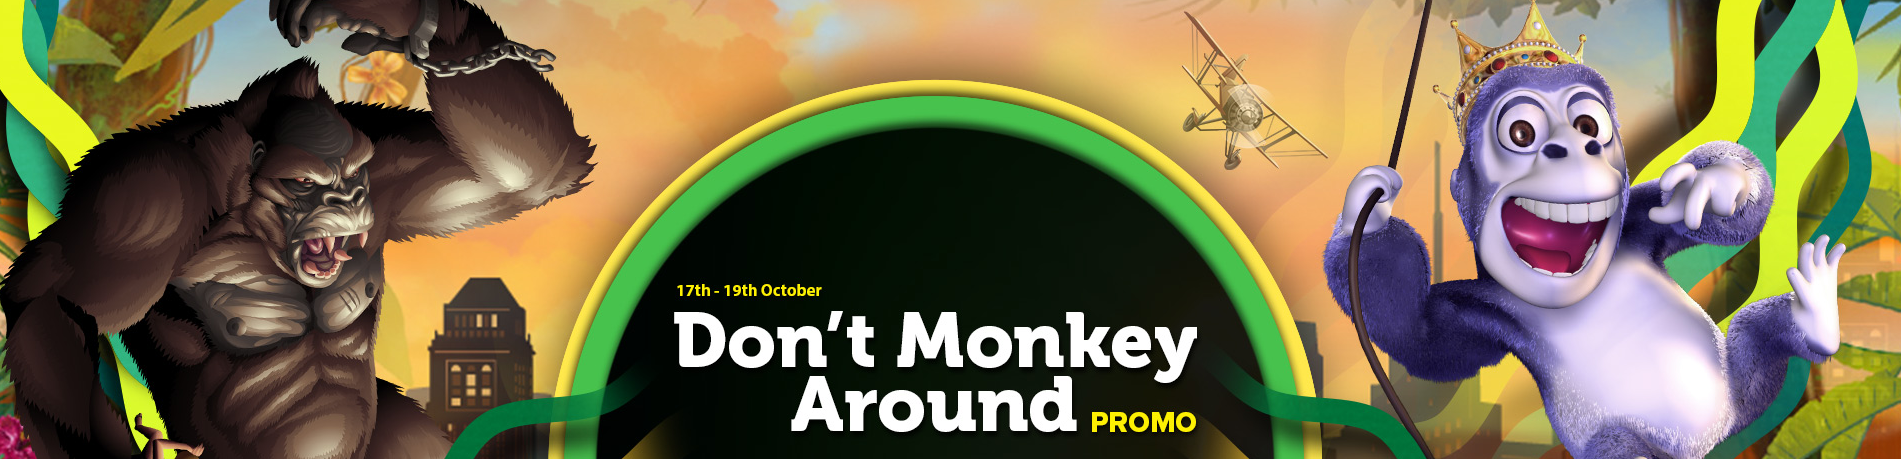 Don't Monkey Around, daily promotions